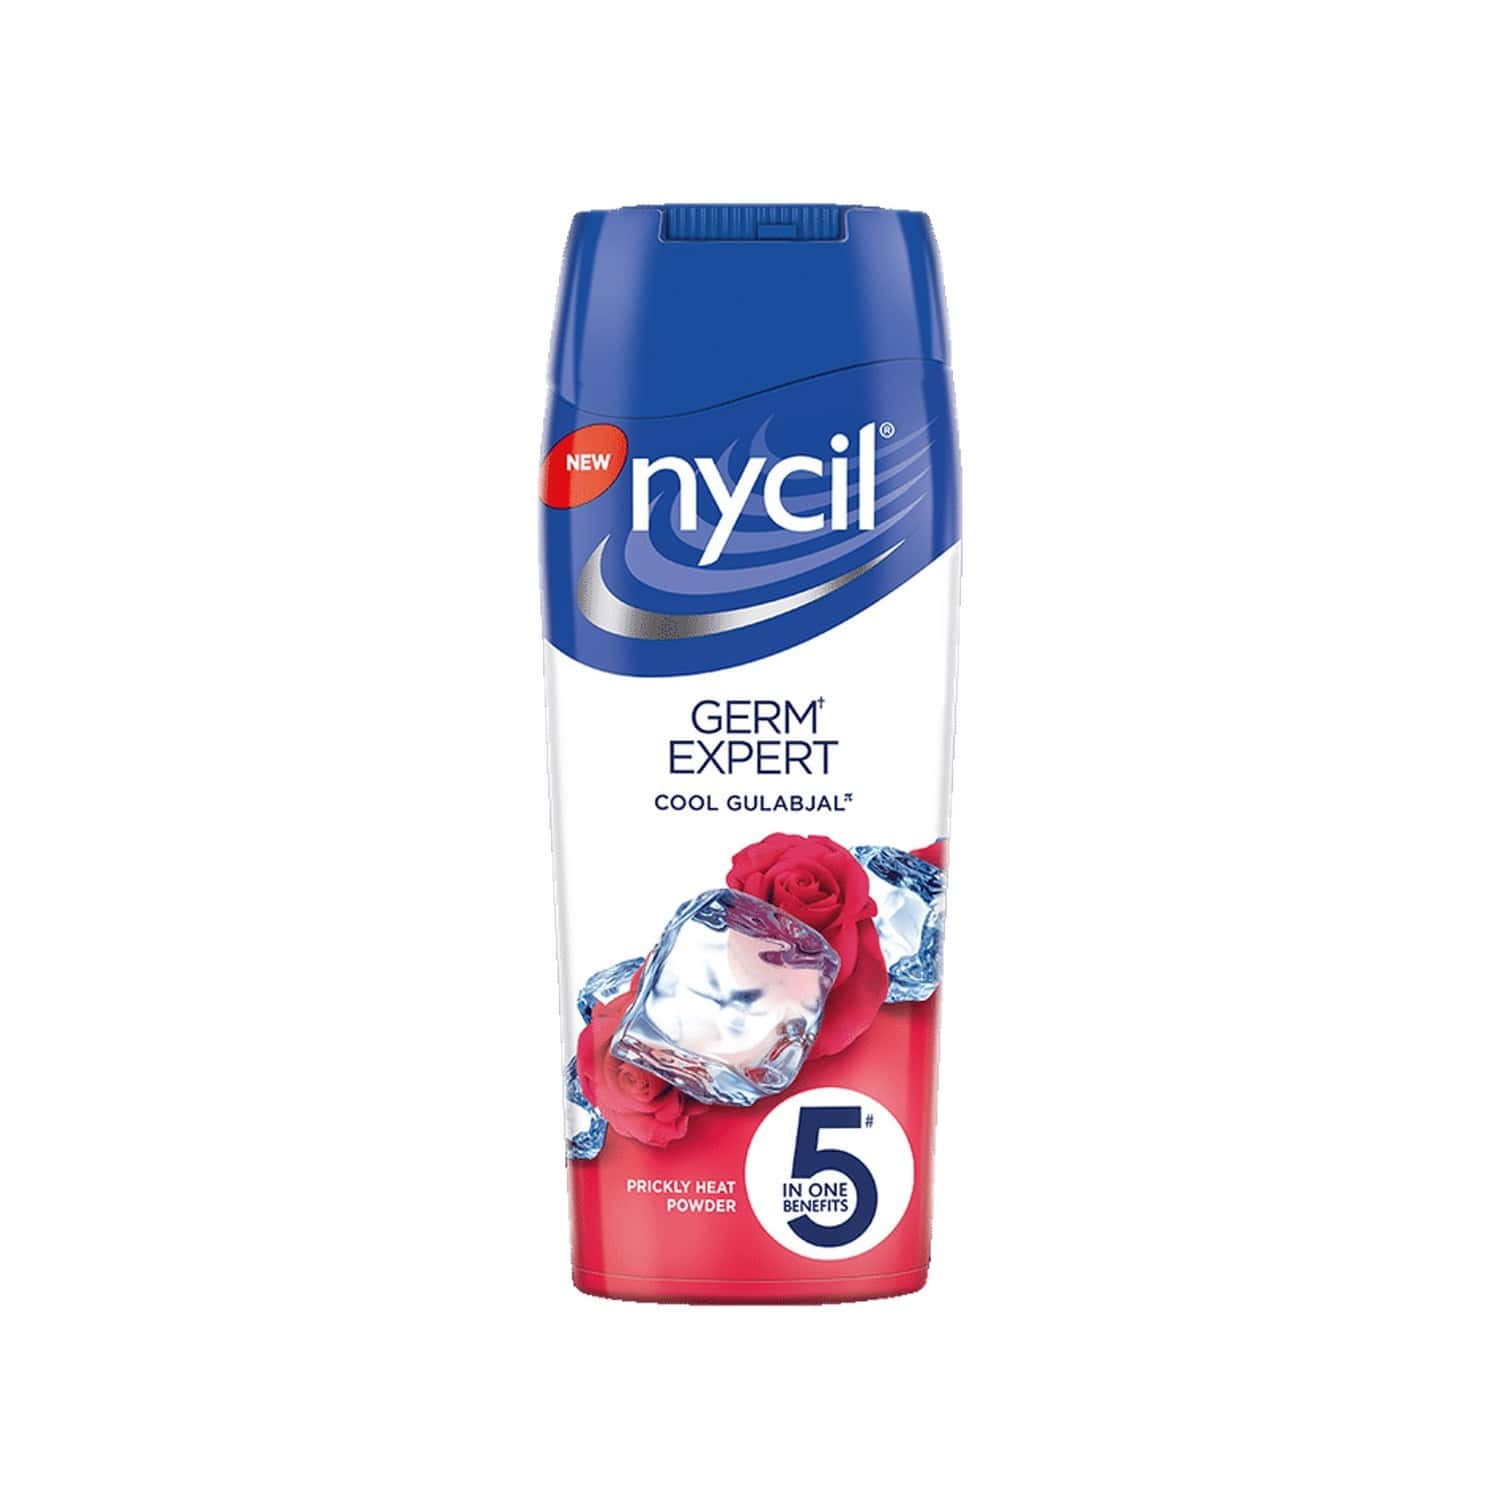 Nycil Cool Gulabjal Prickly Heat Powder Bottle Of 150 G (free Glucon-d Orange 100gm Worth Rs 41)